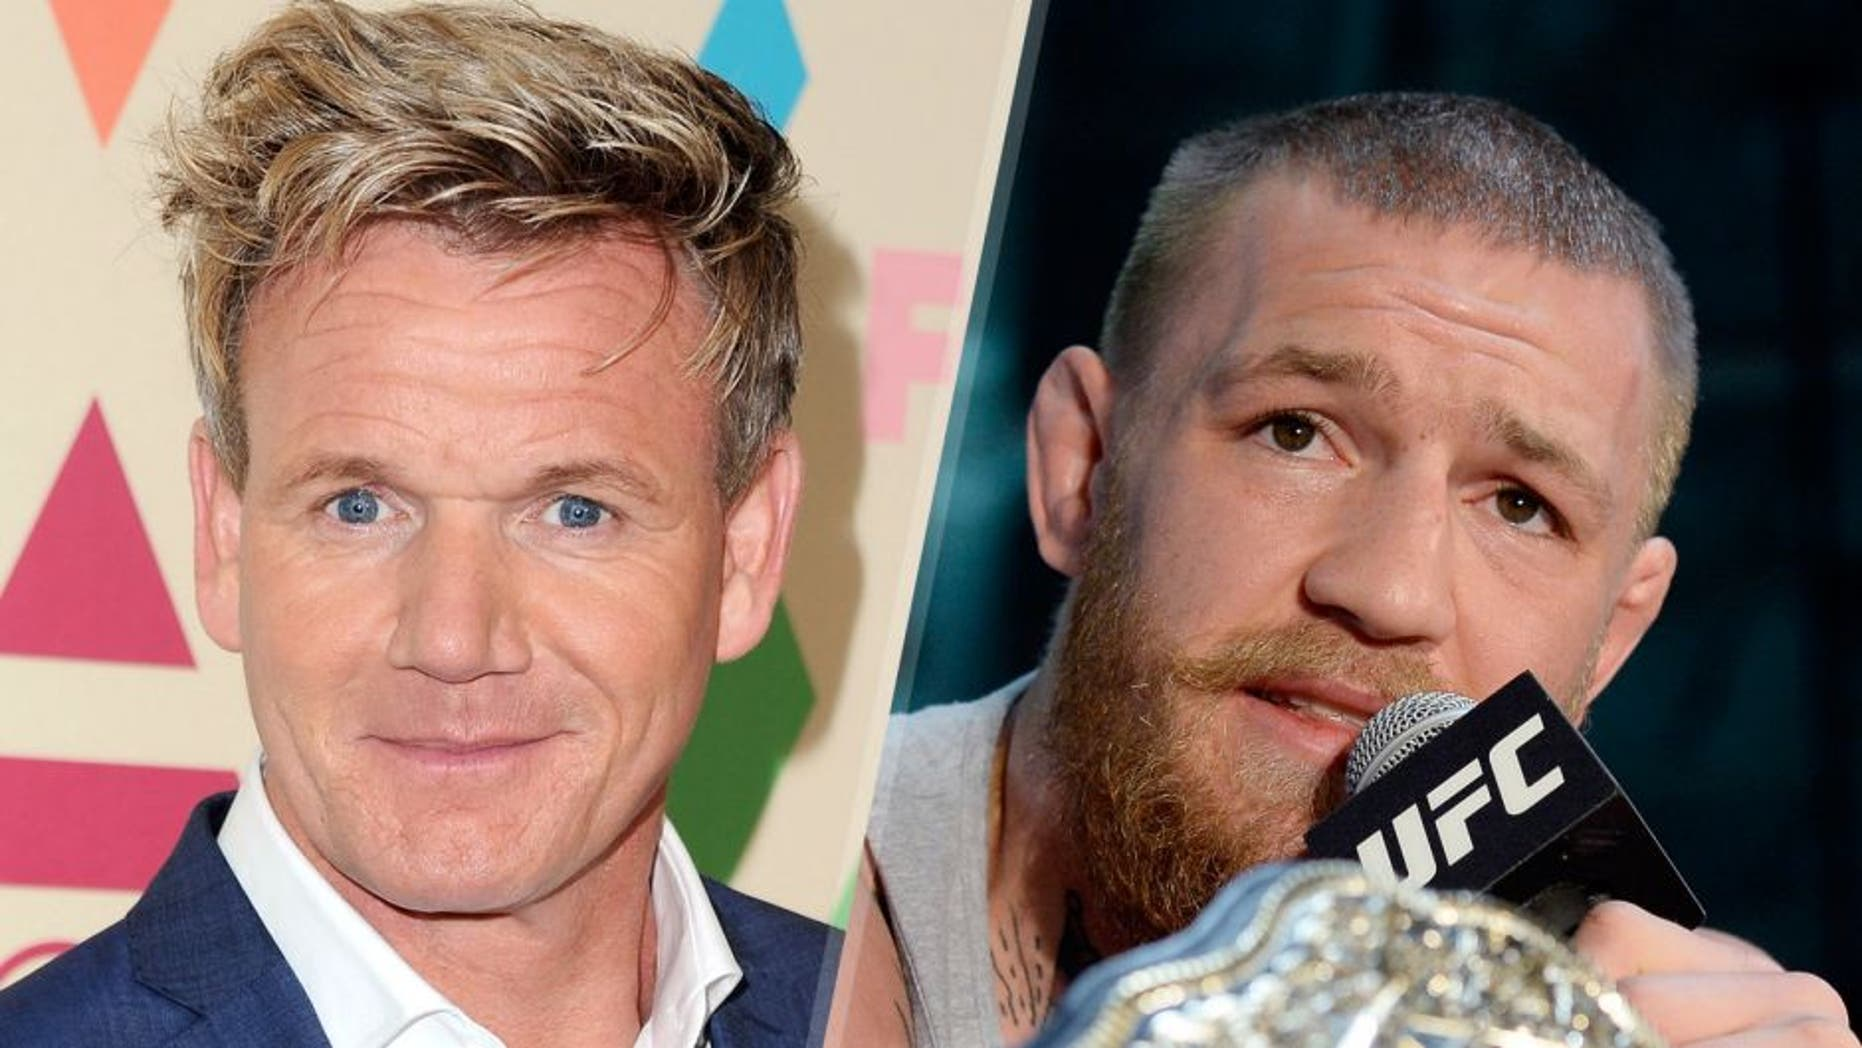 WEST HOLLYWOOD, CA - AUGUST 06: Gordon Ramsay arrives at the 2015 Summer TCA Tour FOX All-Star Party at Soho House on August 6, 2015 in West Hollywood, California. (Photo by Jon Kopaloff/FilmMagic) TORRANCE, CA - FEBRUARY 24: UFC featherweight champion Conor McGregor speaks during a news conference with lightweight contender Nate Diaz at UFC Gym February 24, 2016, in Torrance, California. (Photo by Kevork Djansezian/Getty Images)